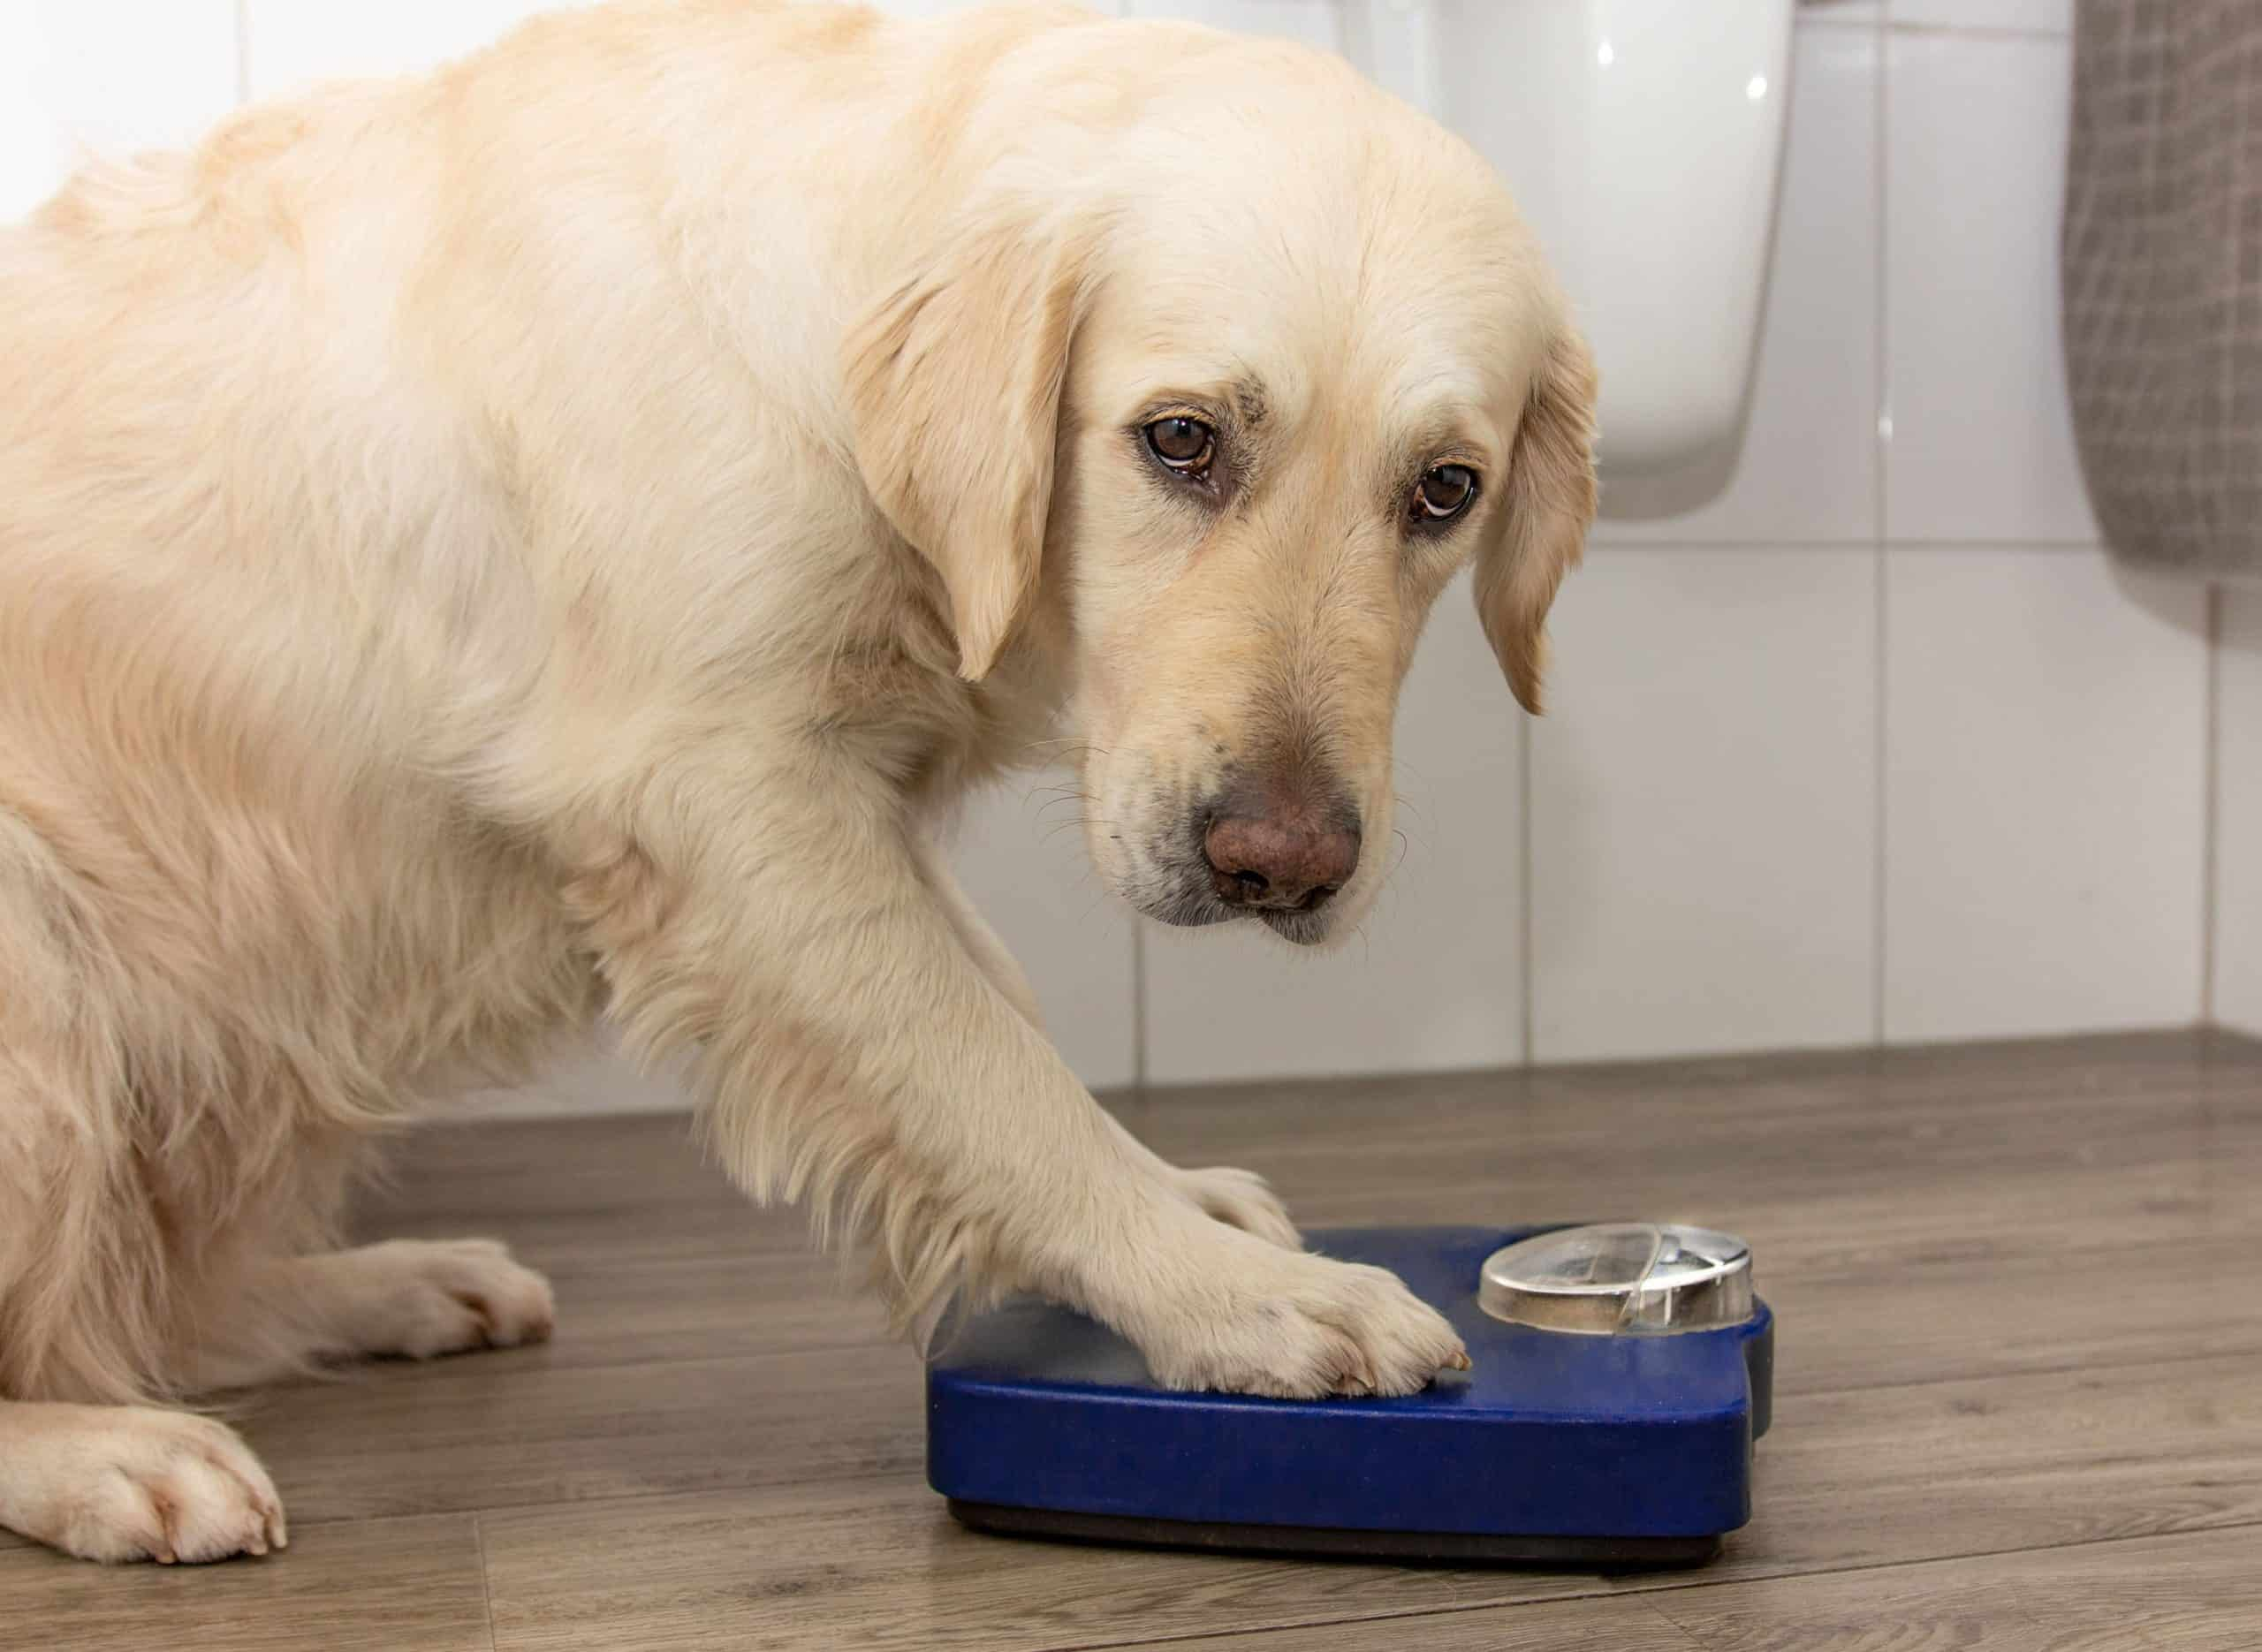 Overweight golden retriever with scale. Several risk factors like obesity can predispose dogs to suffer from impacted anal glands.